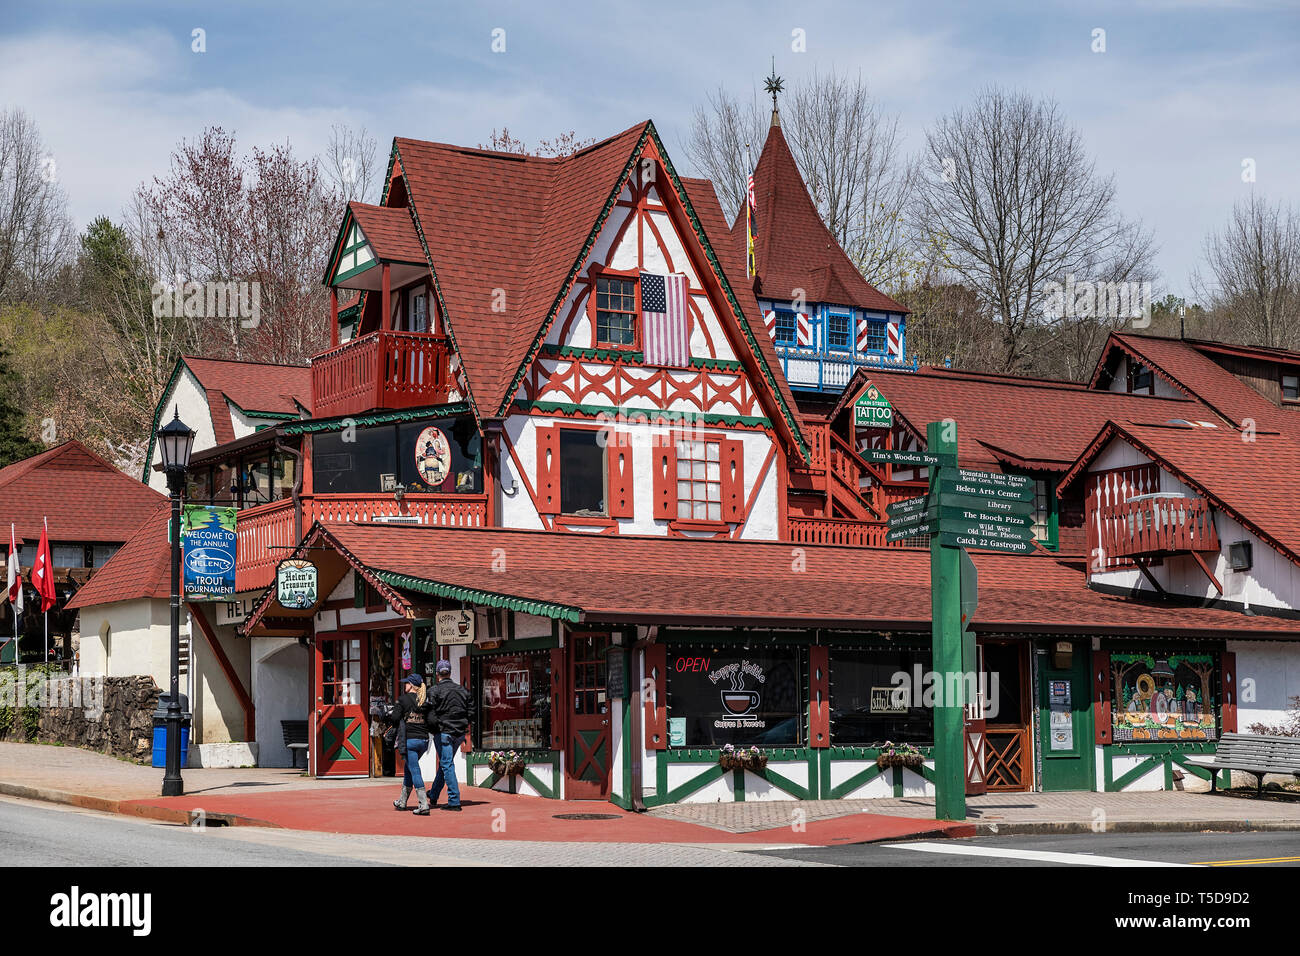 Helen, Georgia is a town modeled on a Bavarian alpine design motif that has made it a tourist attraction. - Stock Image